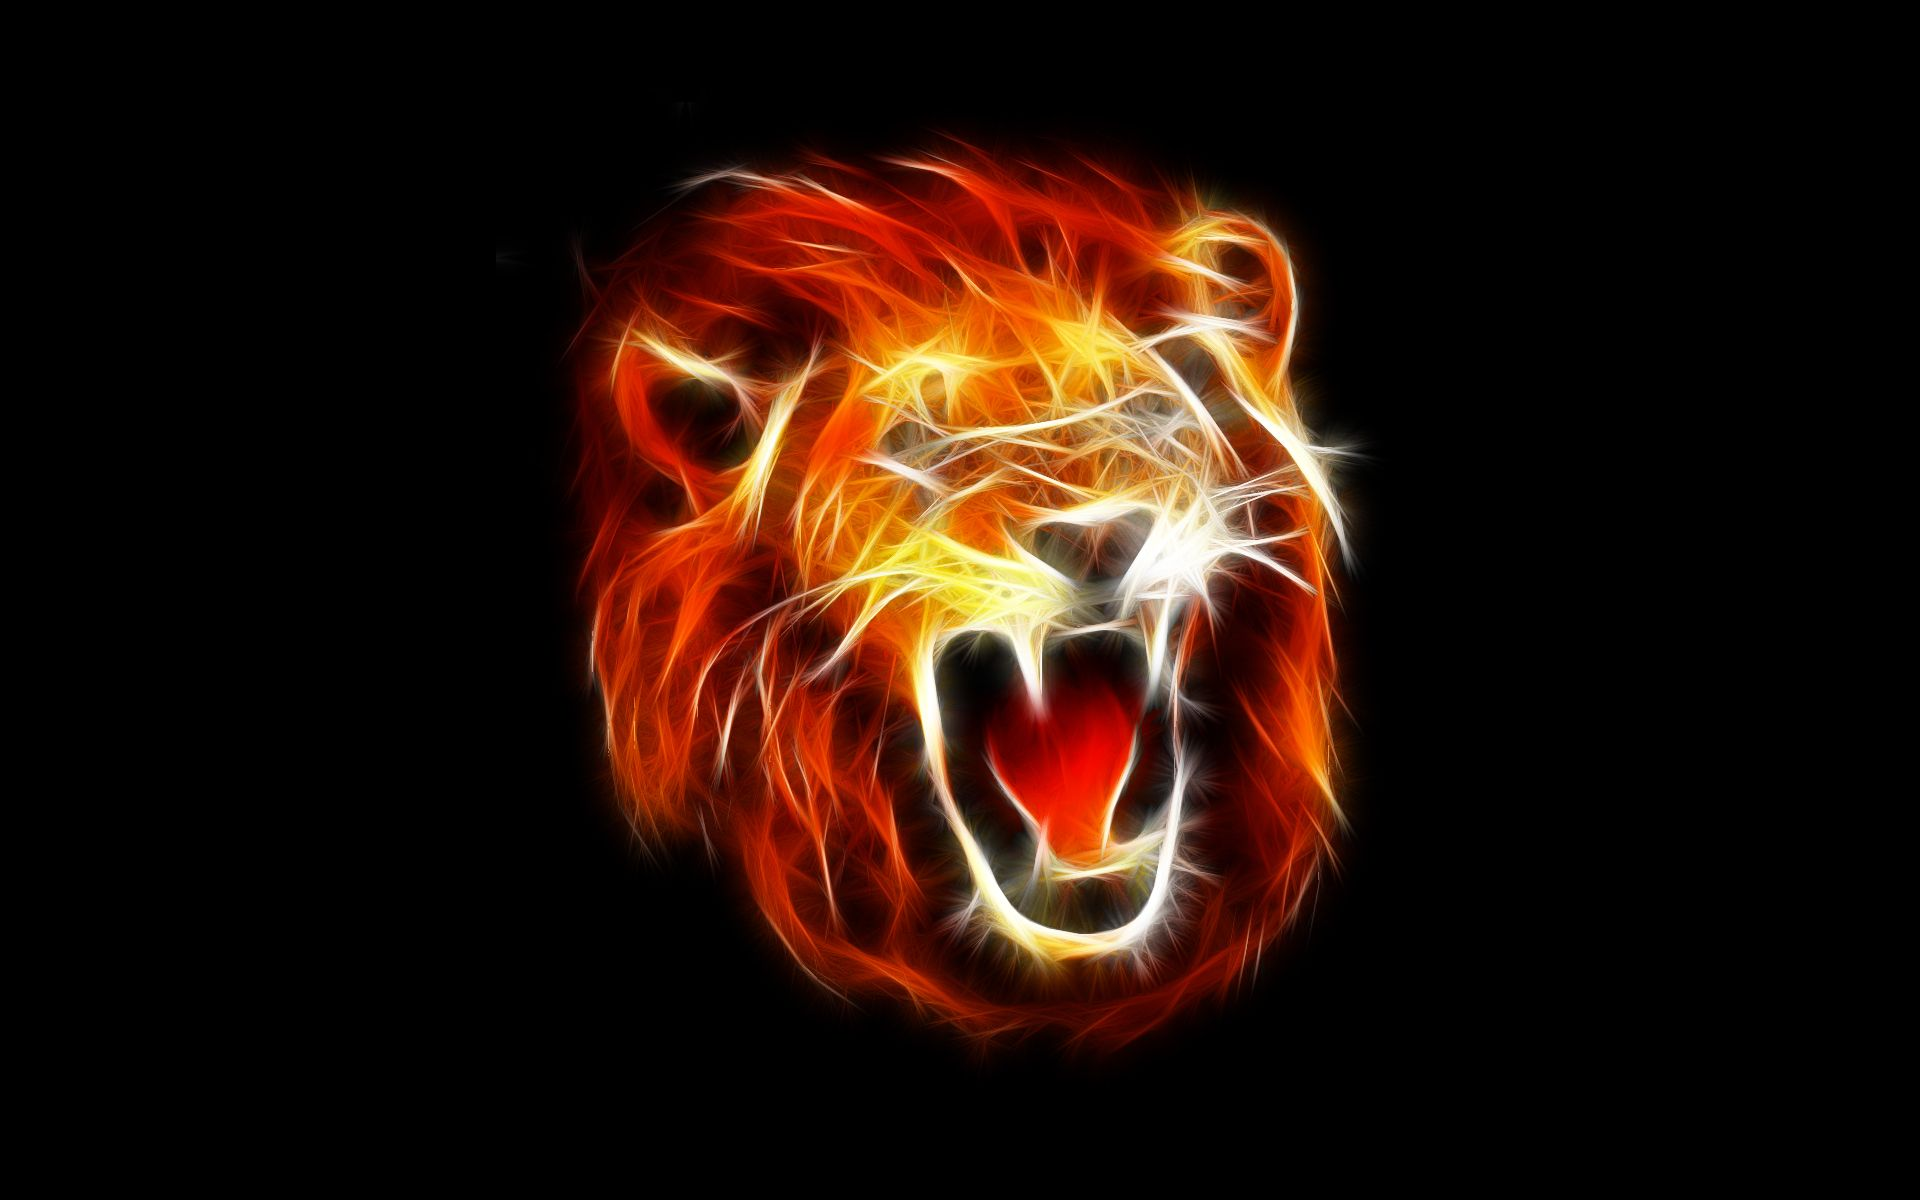 lion hd wallpapers 1024x768 - photo #32